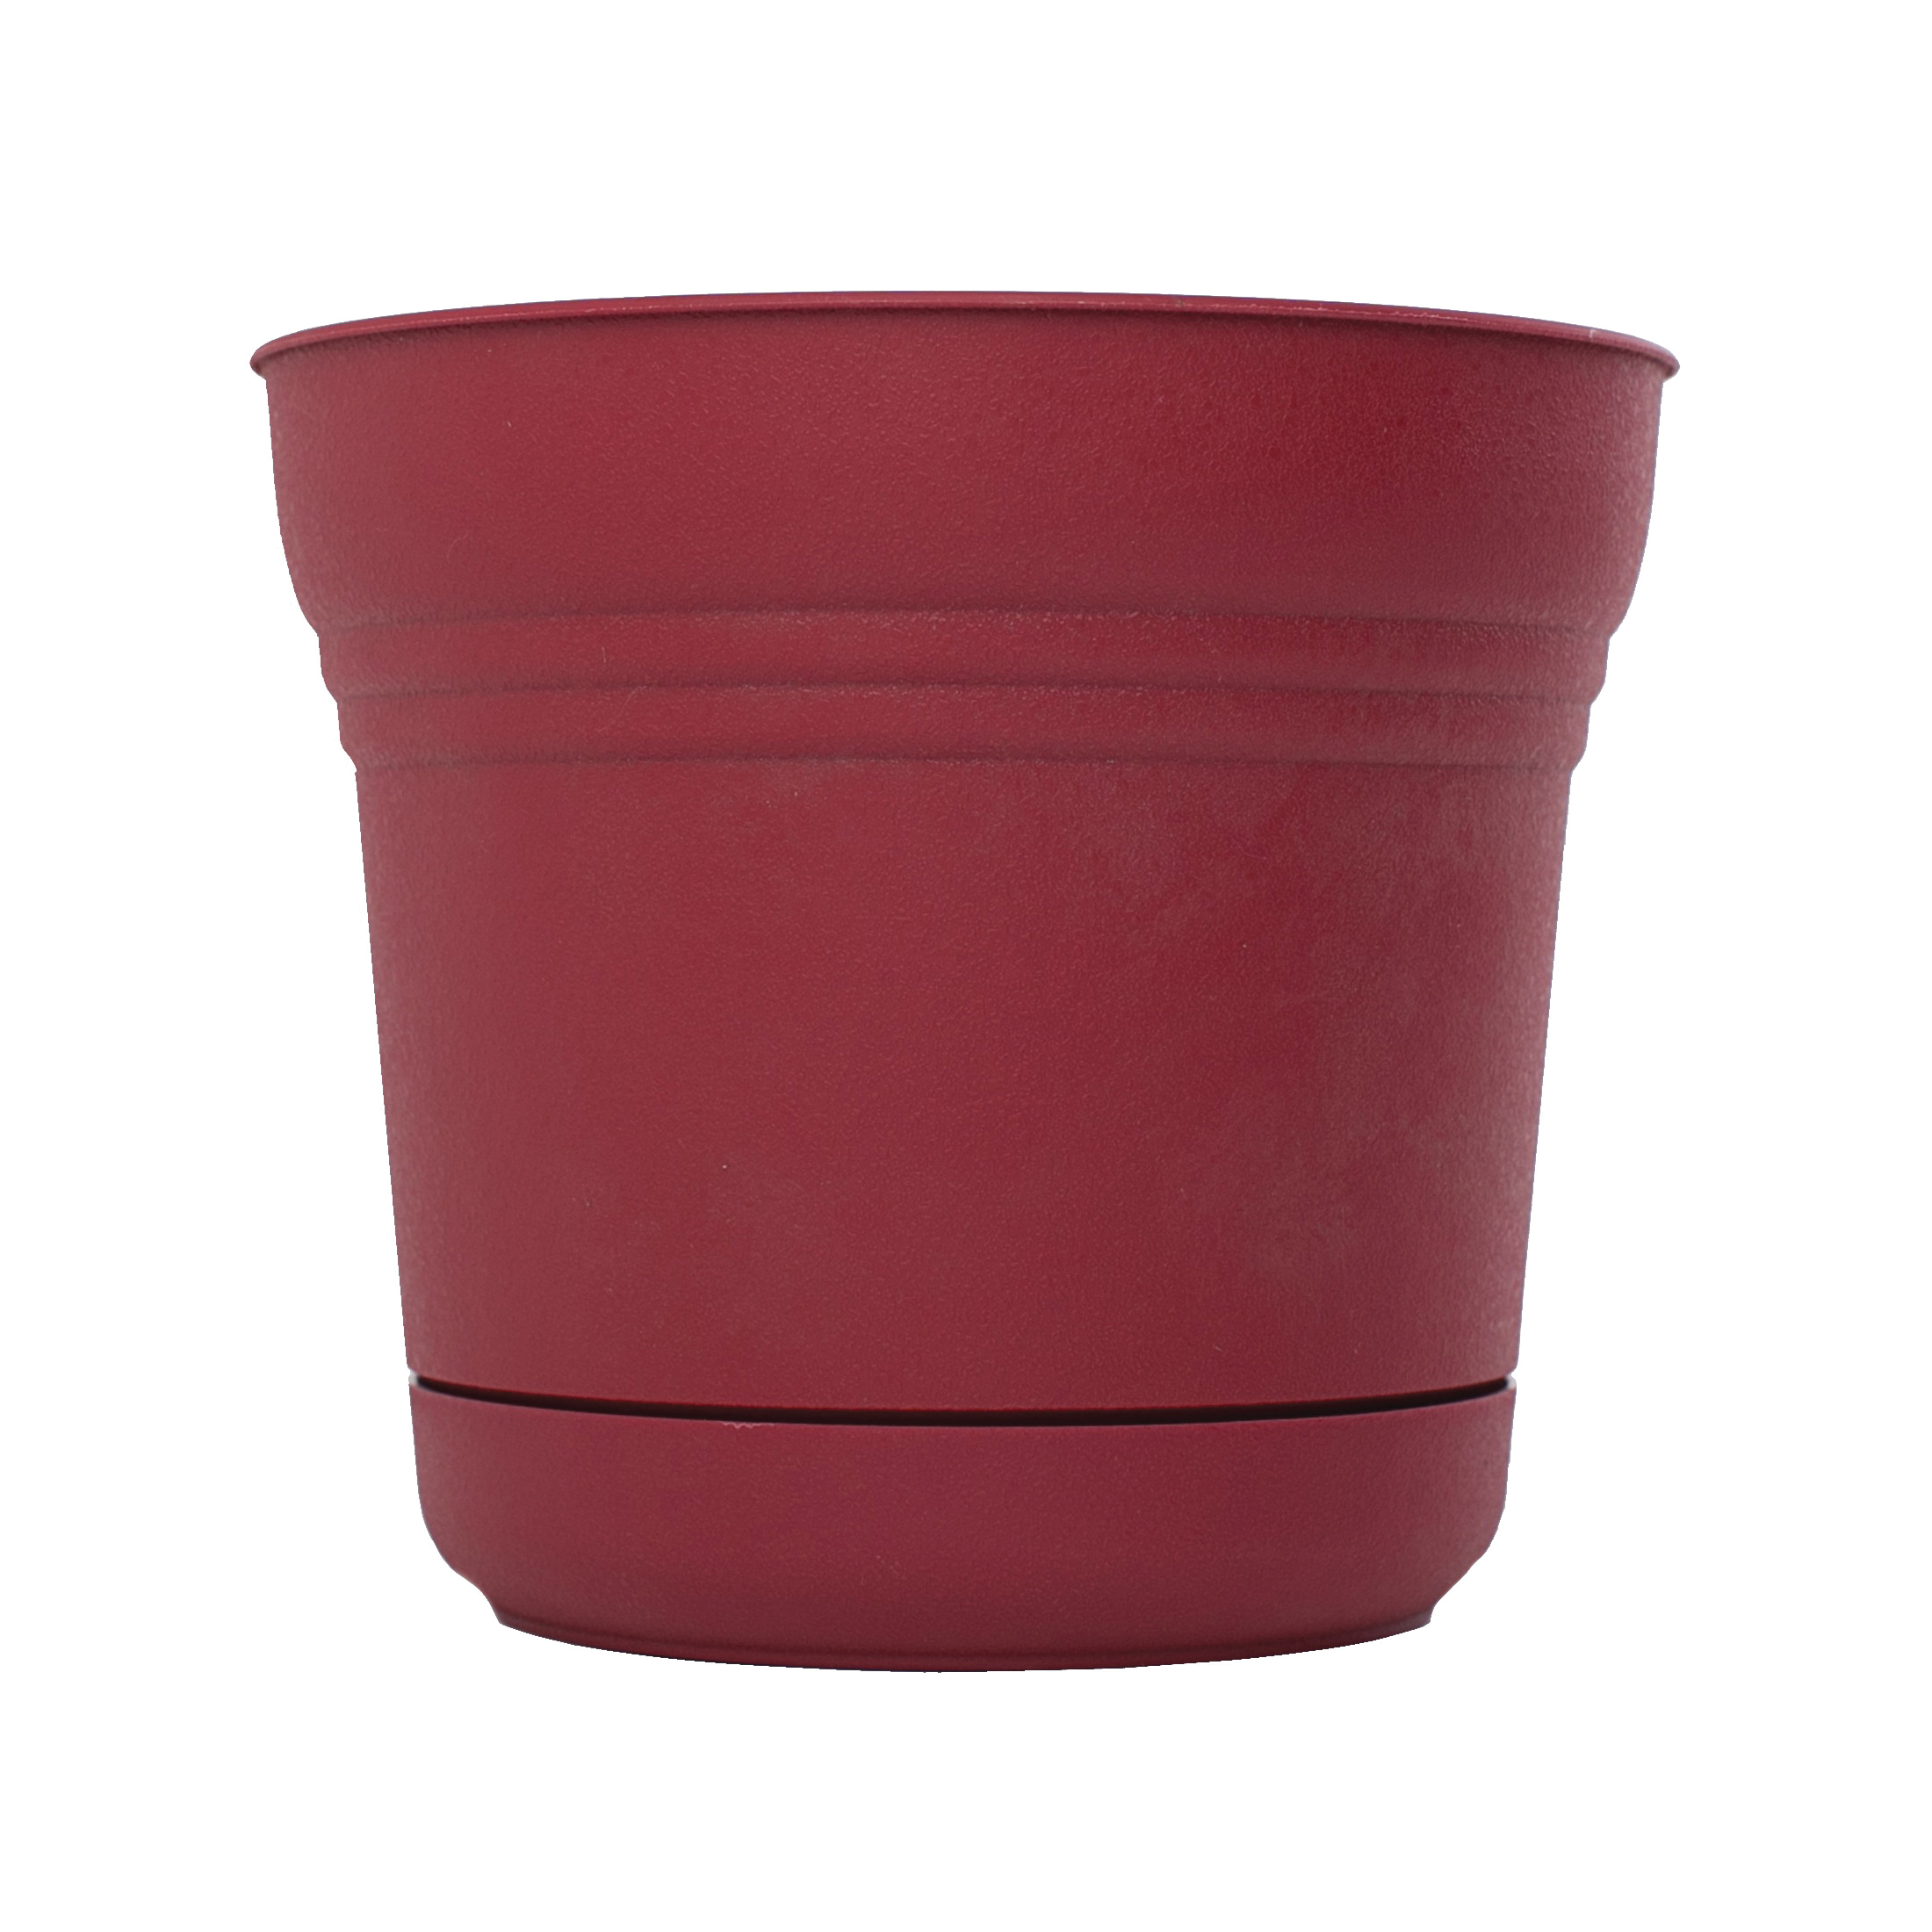 Picture of Bloem Saturn SP1012 Planter, 8-1/2 in W, Plastic, Union Red